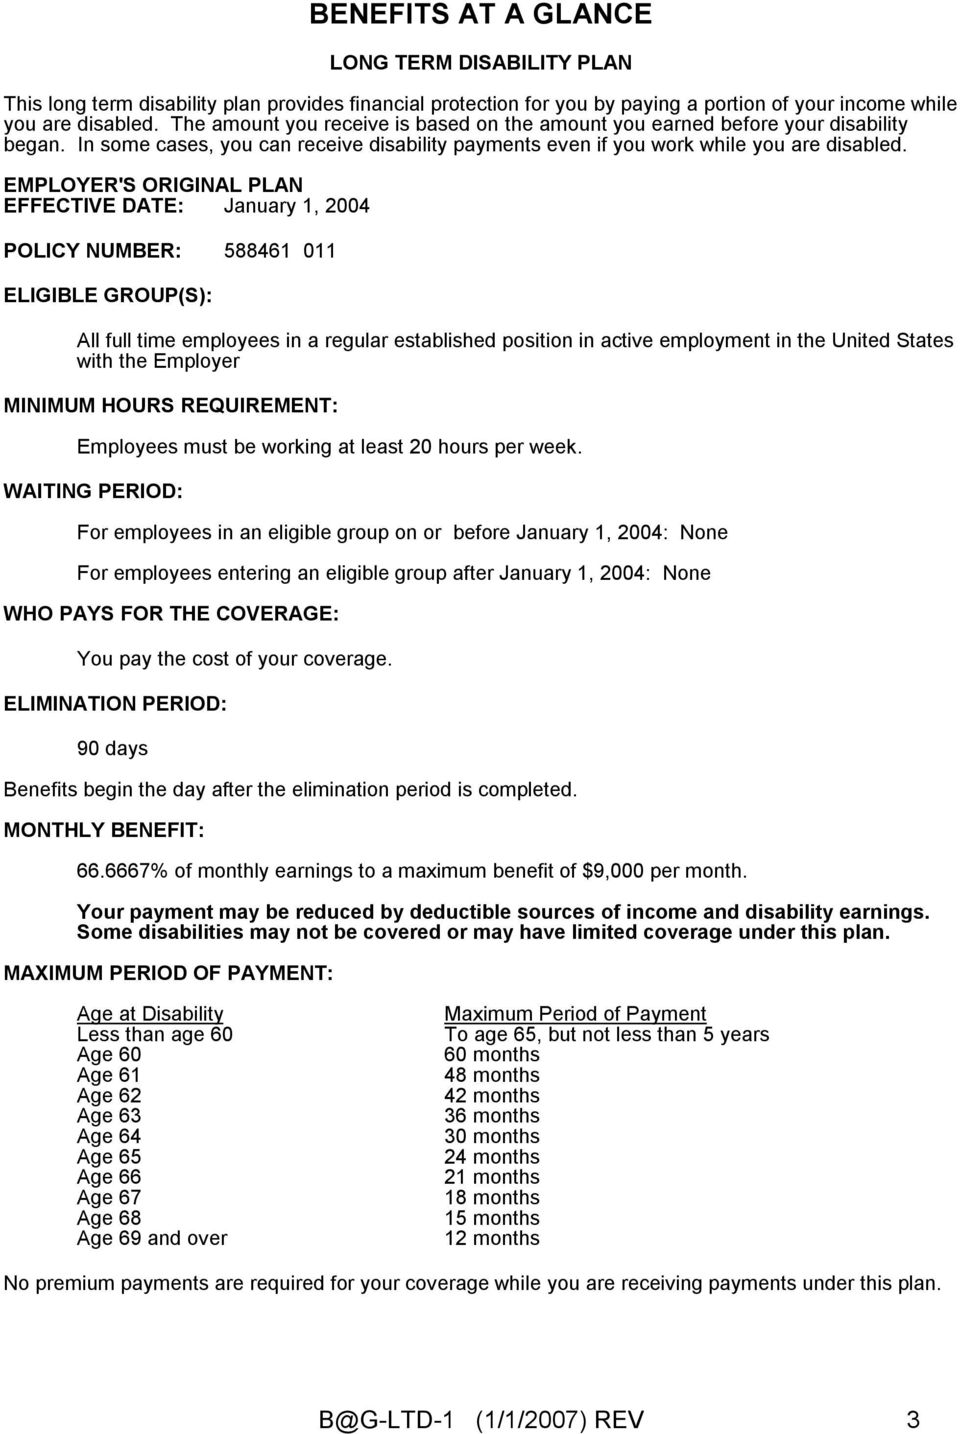 EMPLOYER'S ORIGINAL PLAN EFFECTIVE DATE: January 1, 2004 POLICY NUMBER: 588461 011 ELIGIBLE GROUP(S): All full time employees in a regular established position in active employment in the United